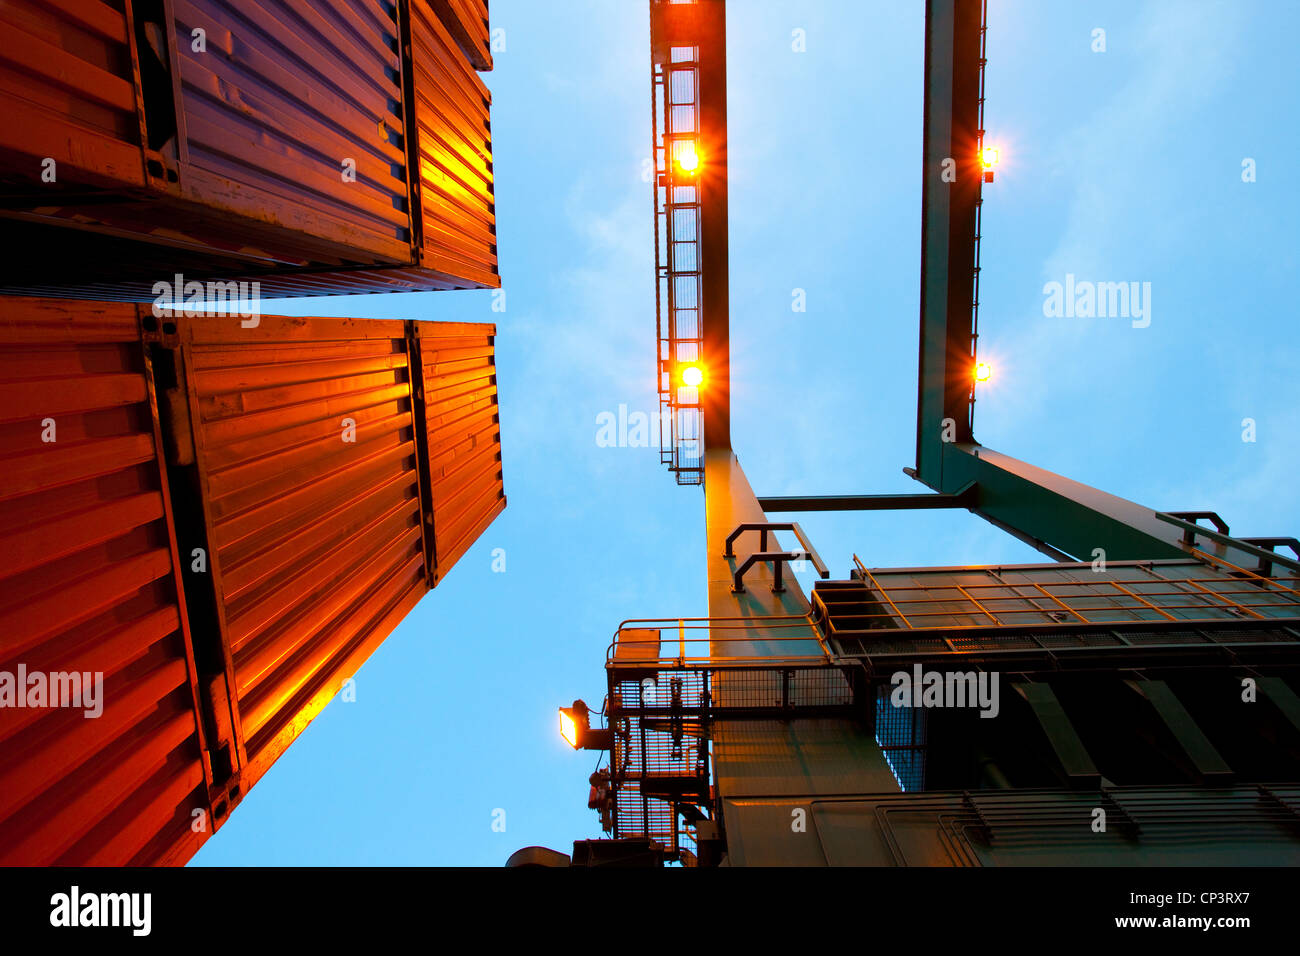 Bottom view of cranes and stack of cargo containers - Stock Image